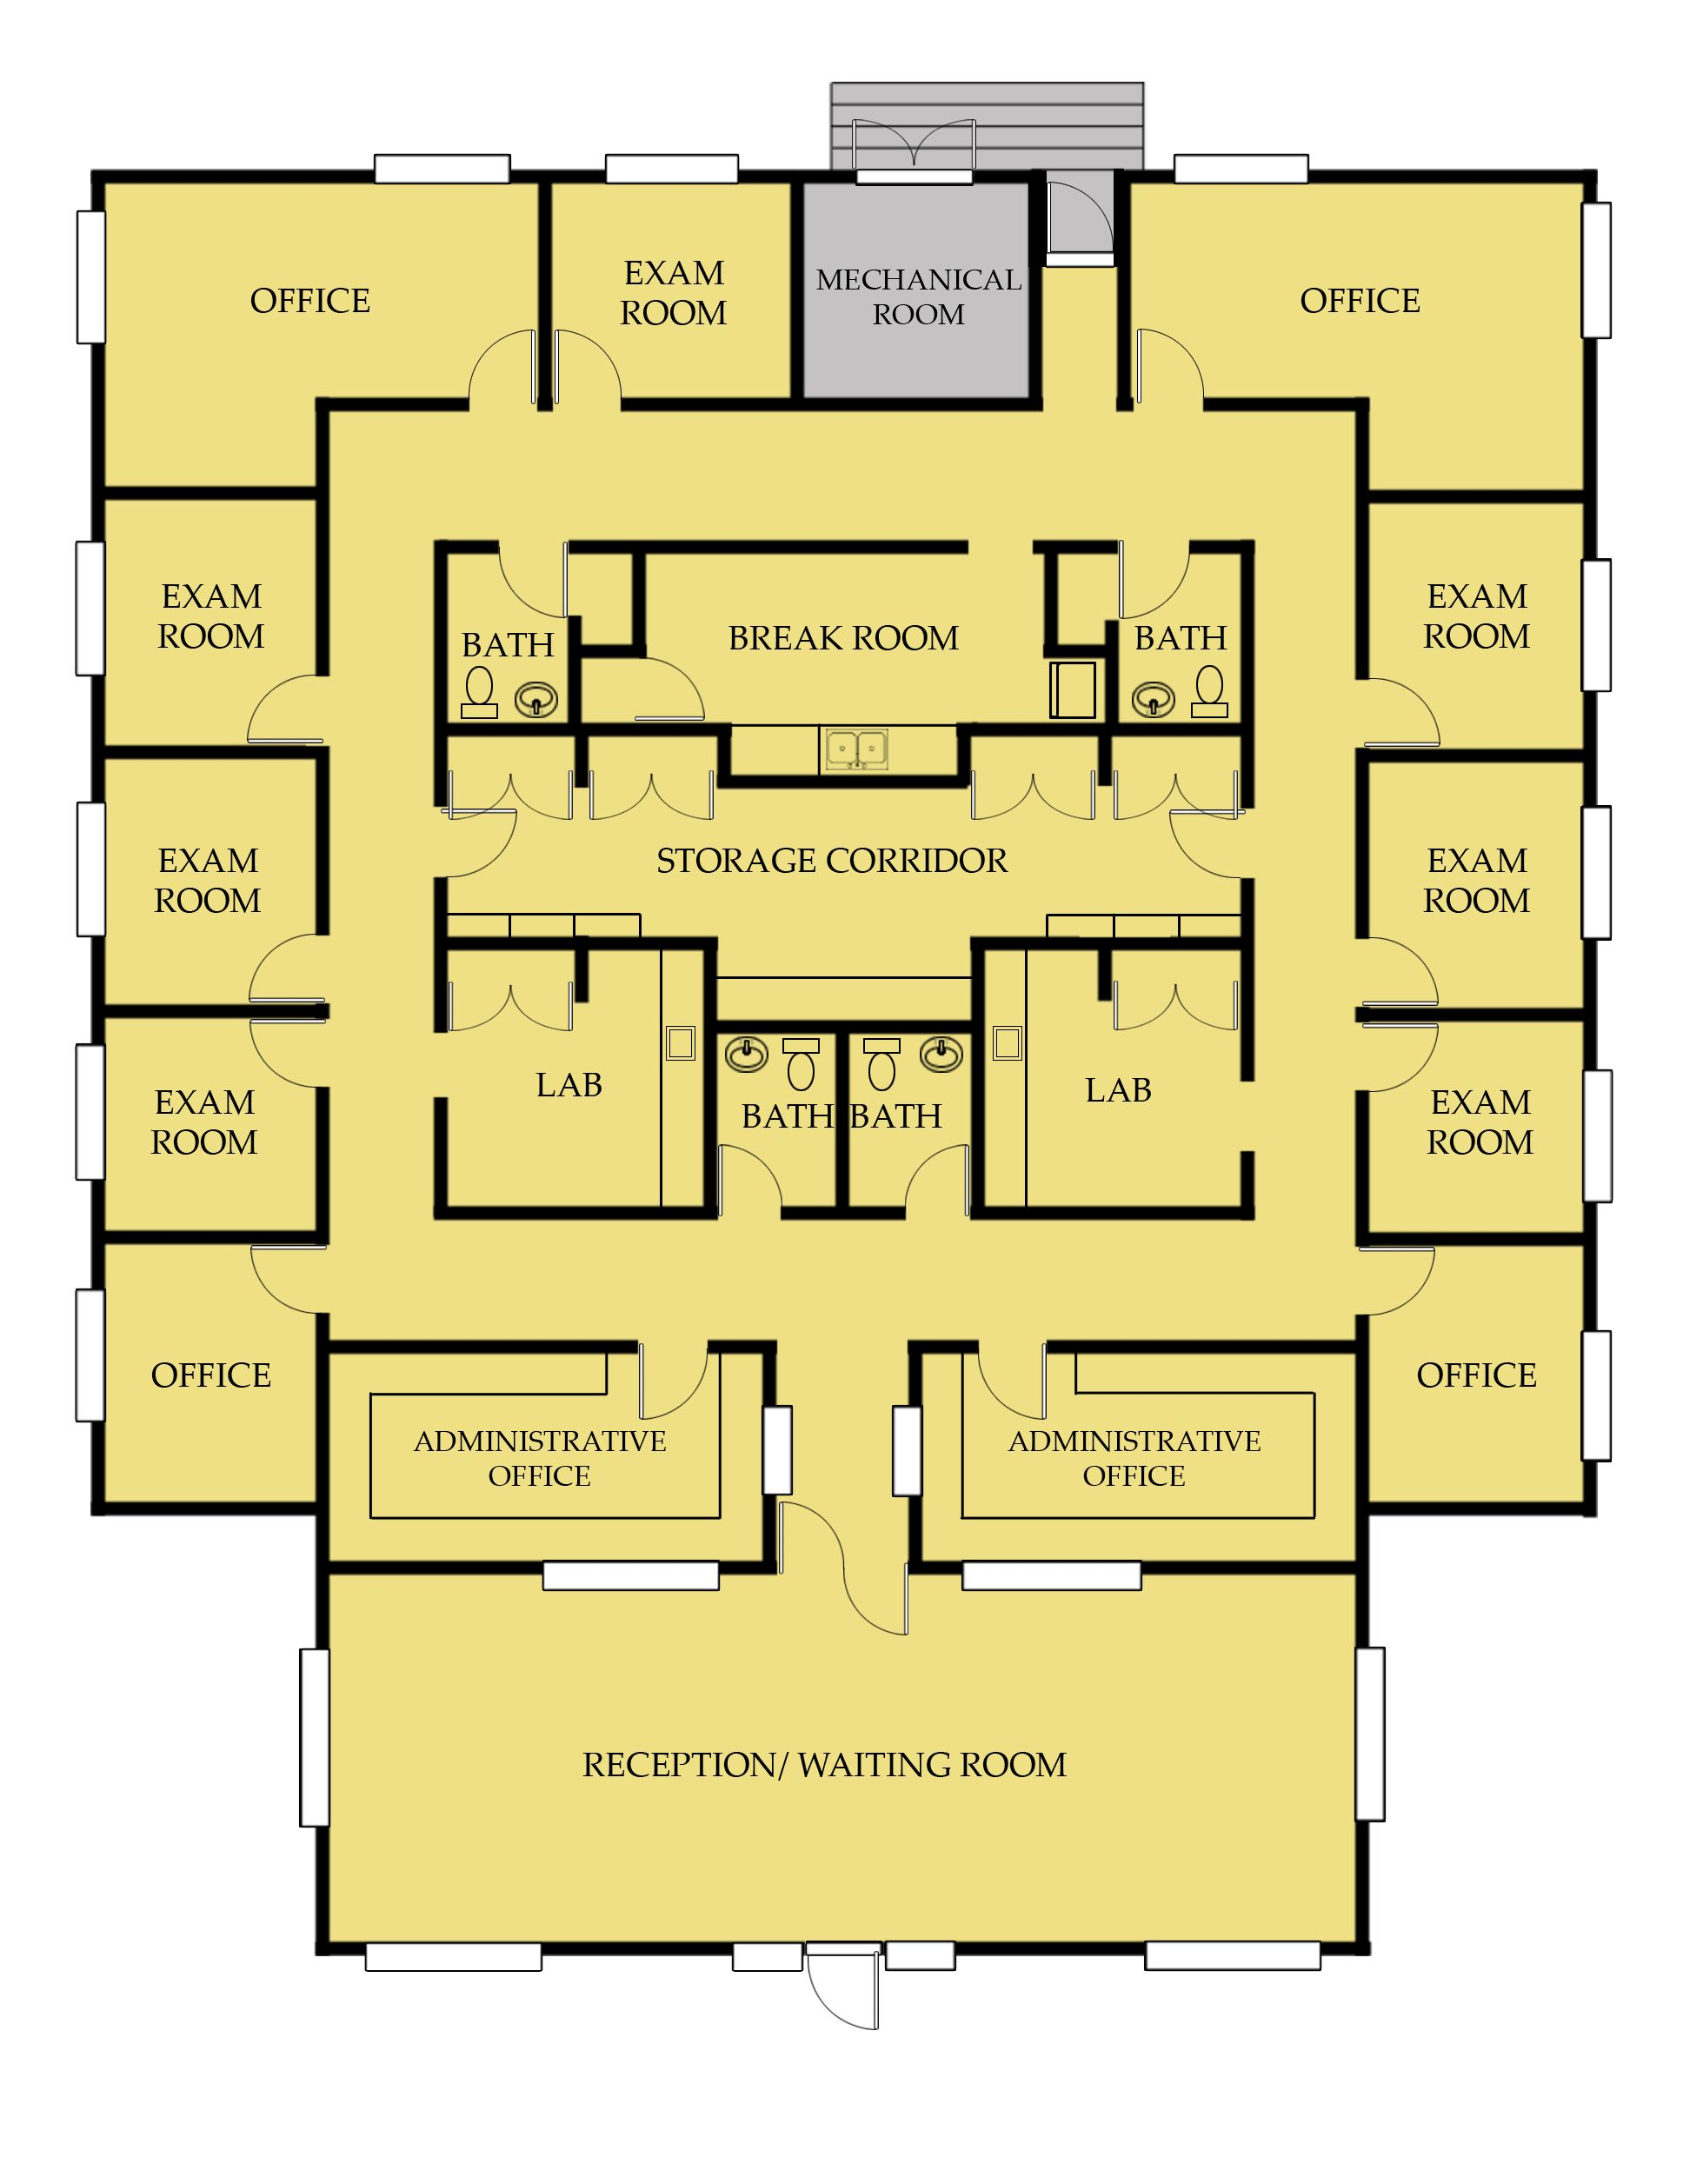 Medical office floor plan pinteres for Office layout plan design